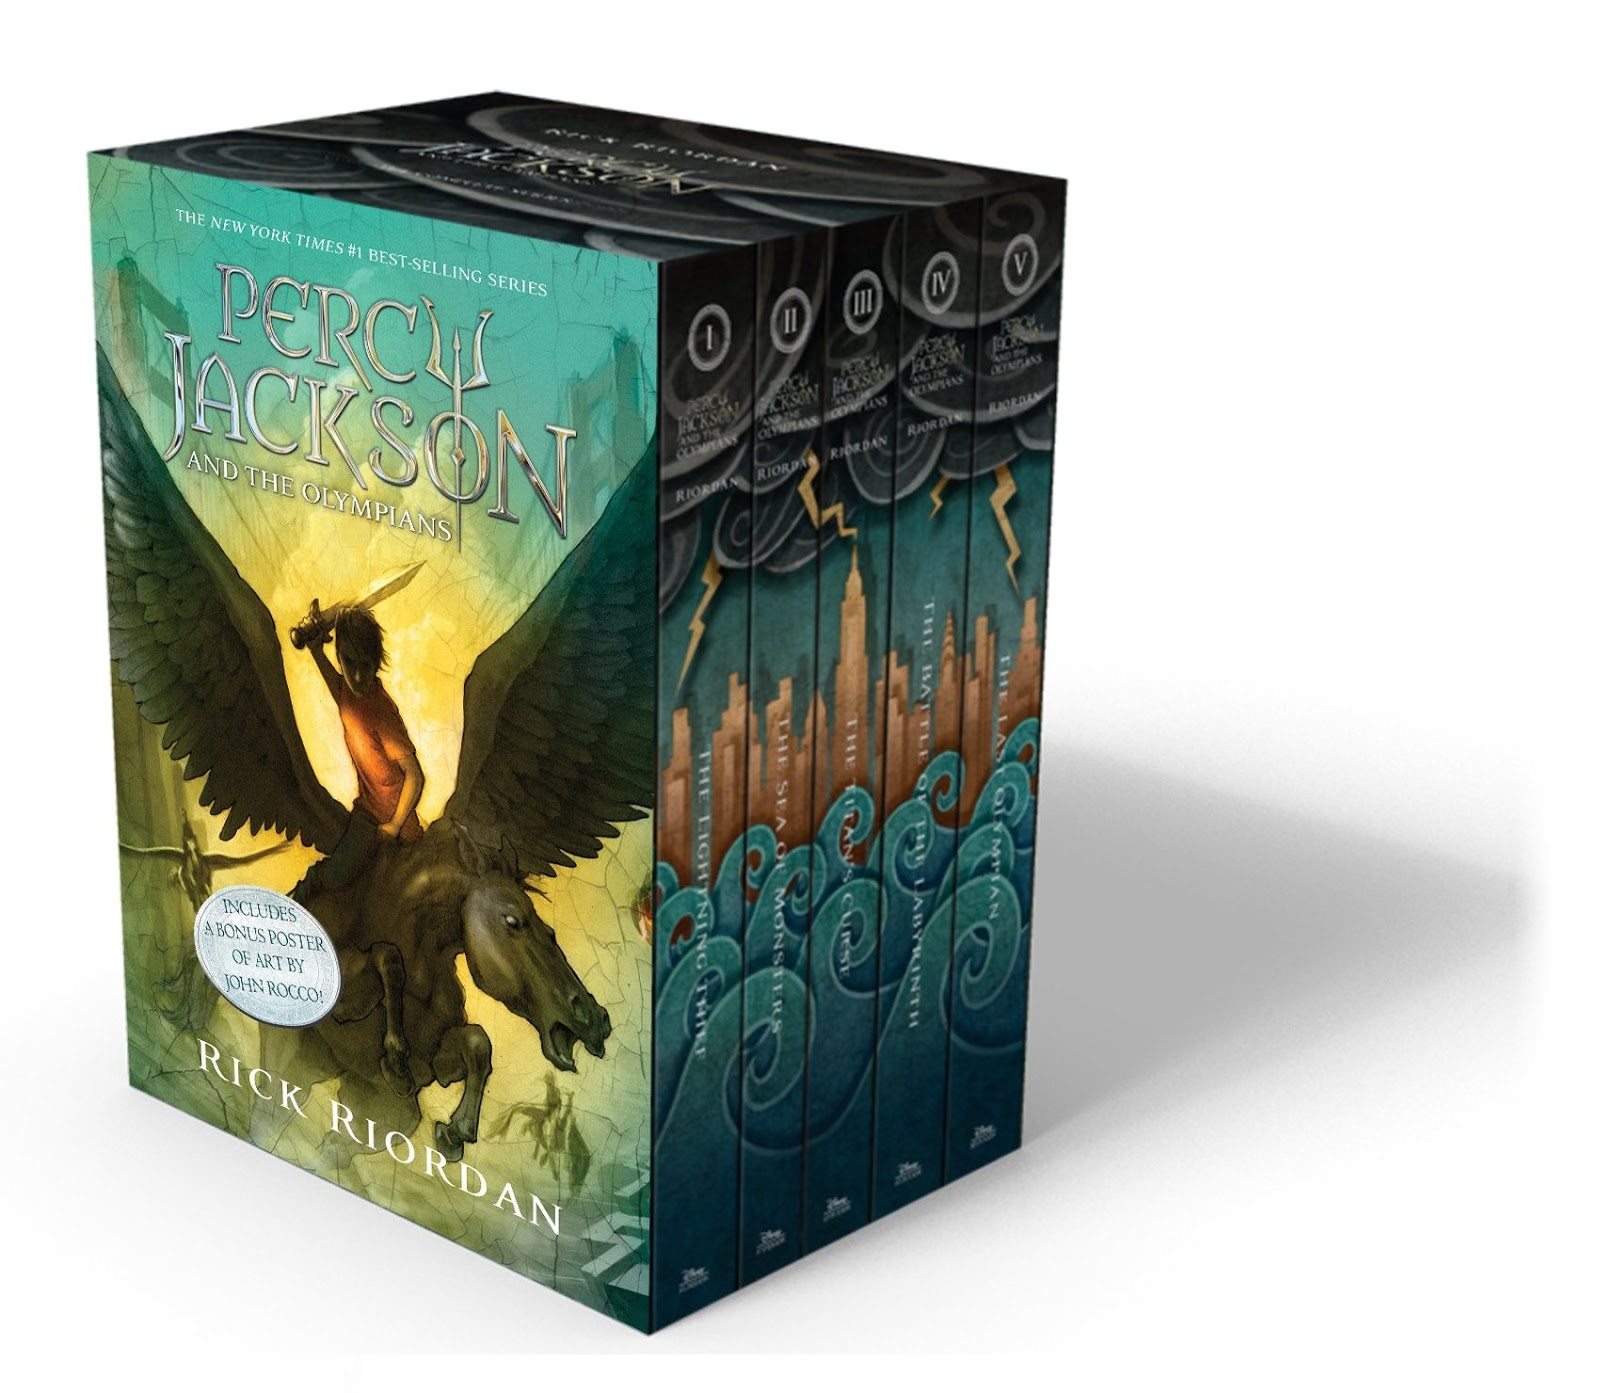 Segundo Libro De Harry Potter Bast Vilard Whislist Box Sets Que Quiero